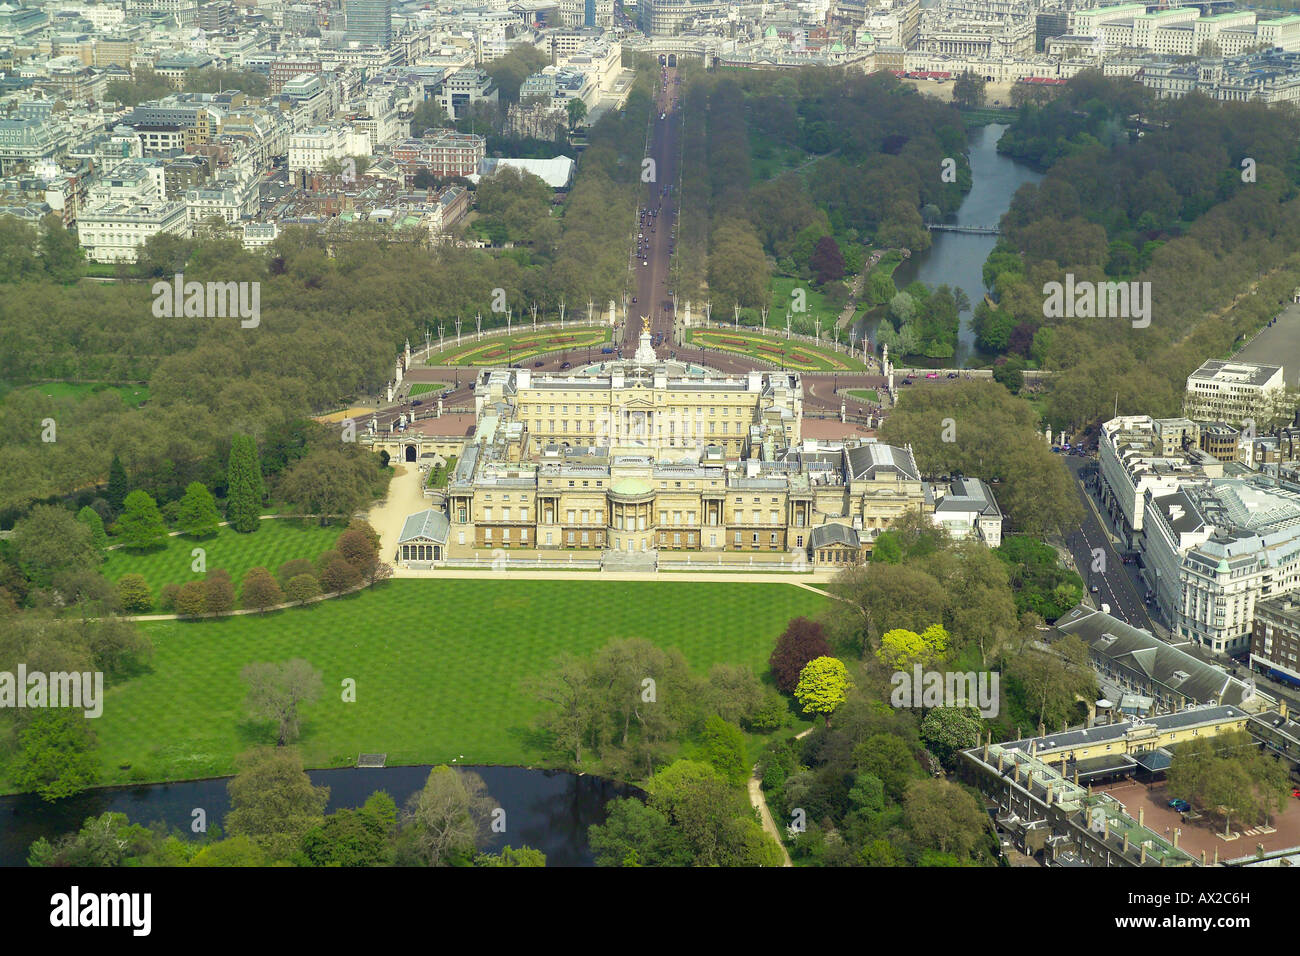 Aerial View Of The Gardens At The Rear Of Buckingham Palace In London Stock Photo 16706440 Alamy